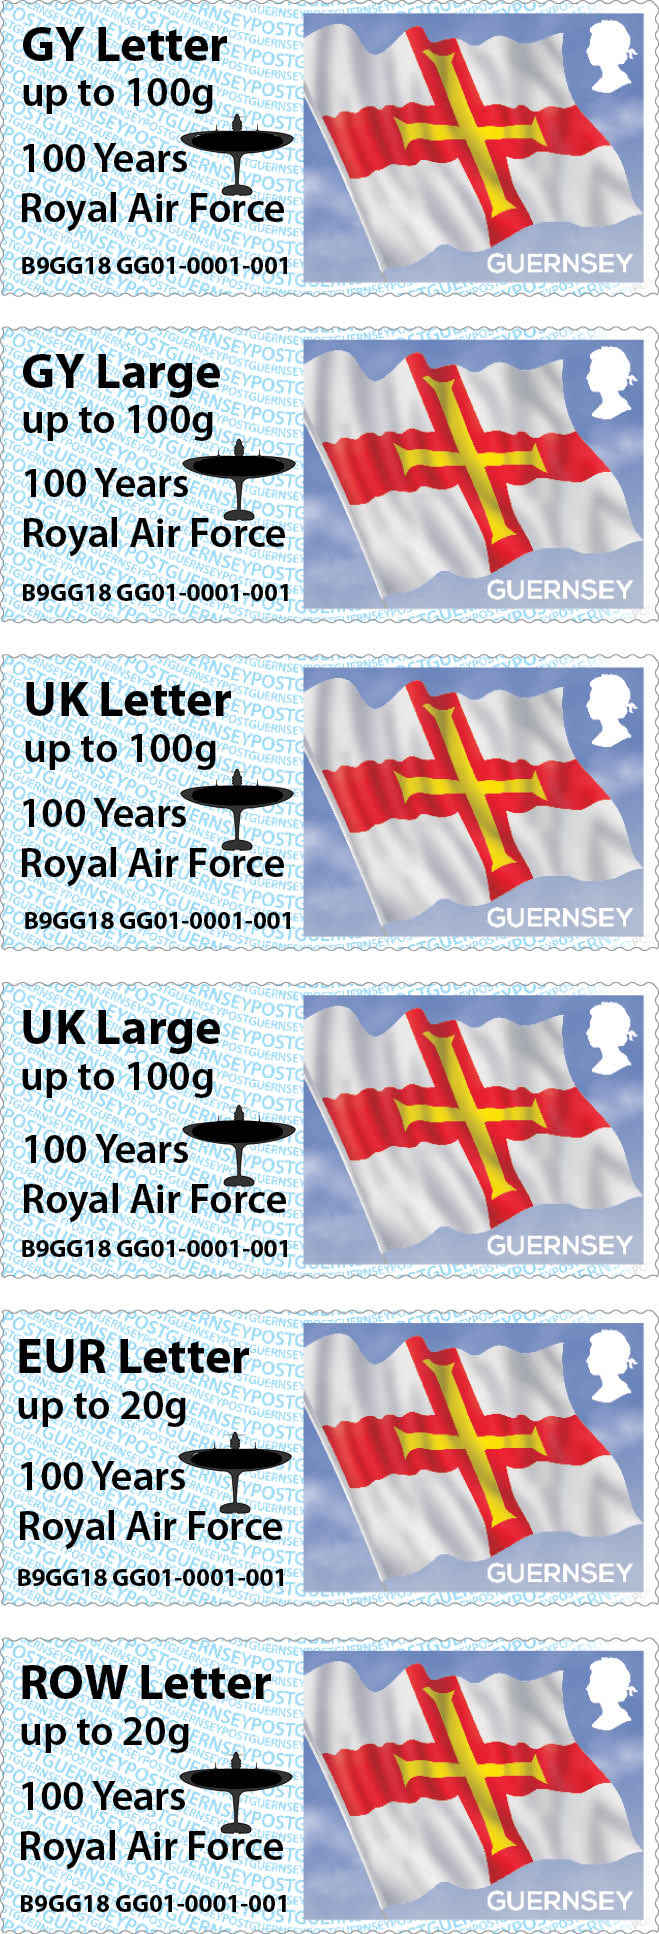 RAF Overprint for Guernsey's Post & Go at Autumn Stampex